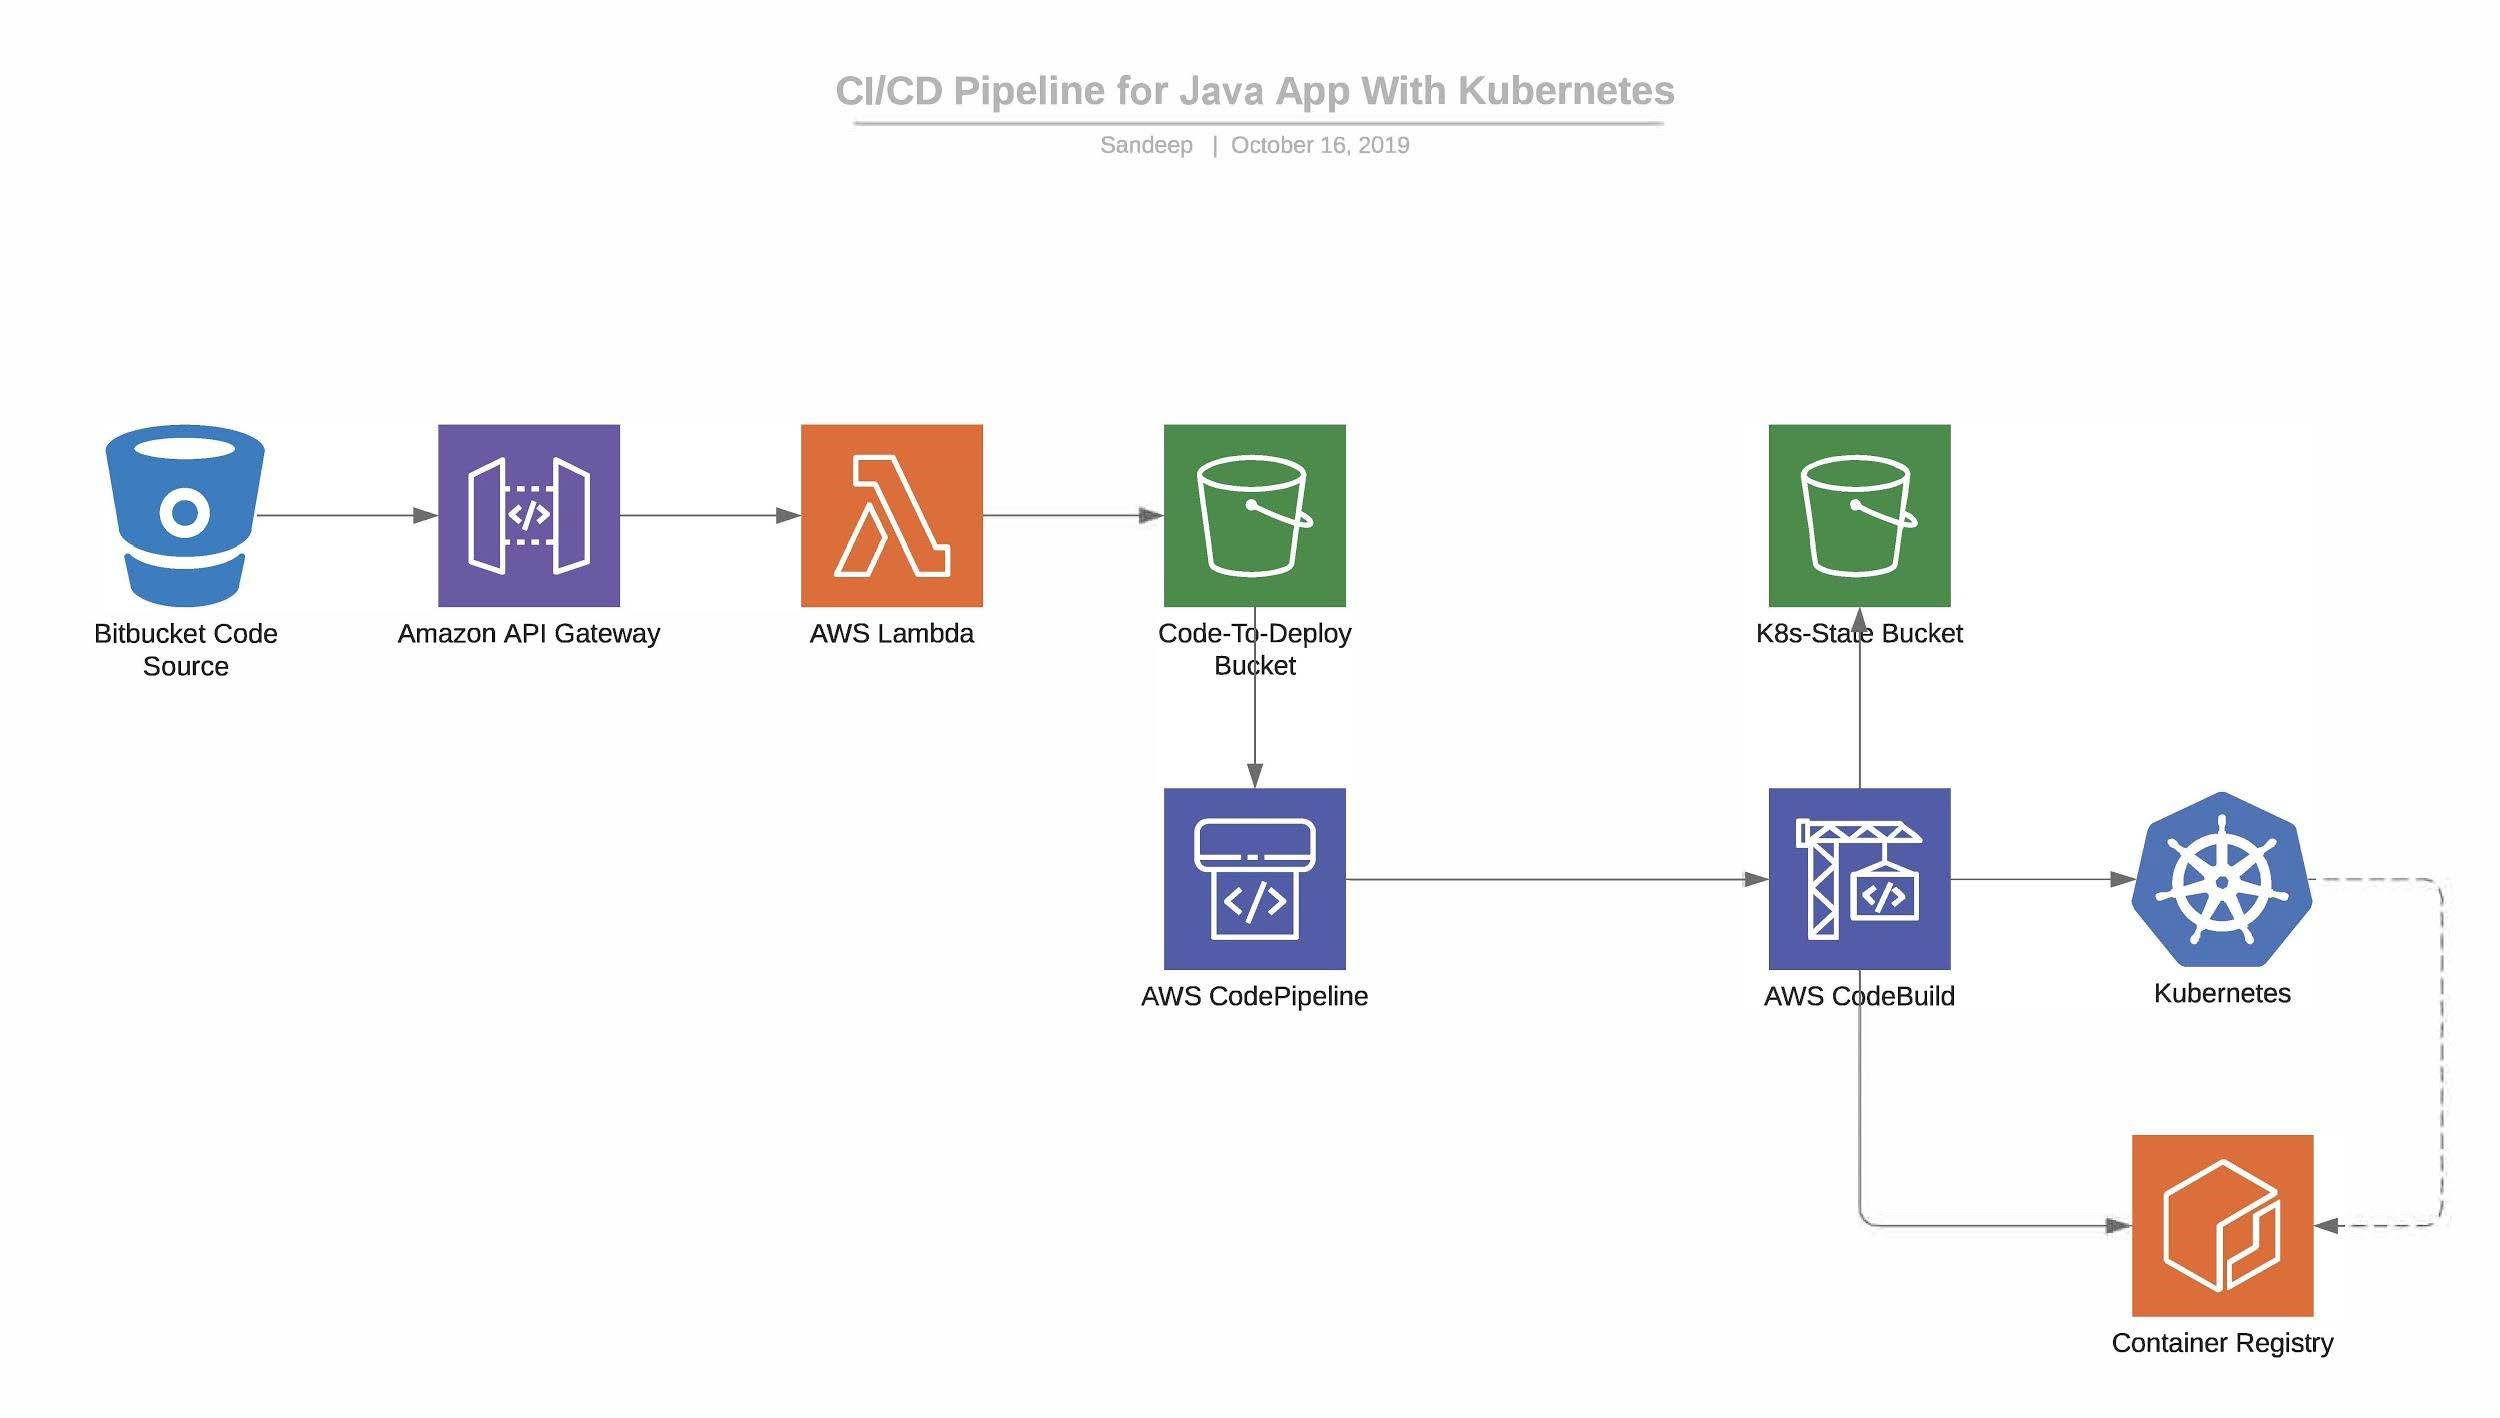 AWS CICD Pipeline for Java Application With Kubernetes